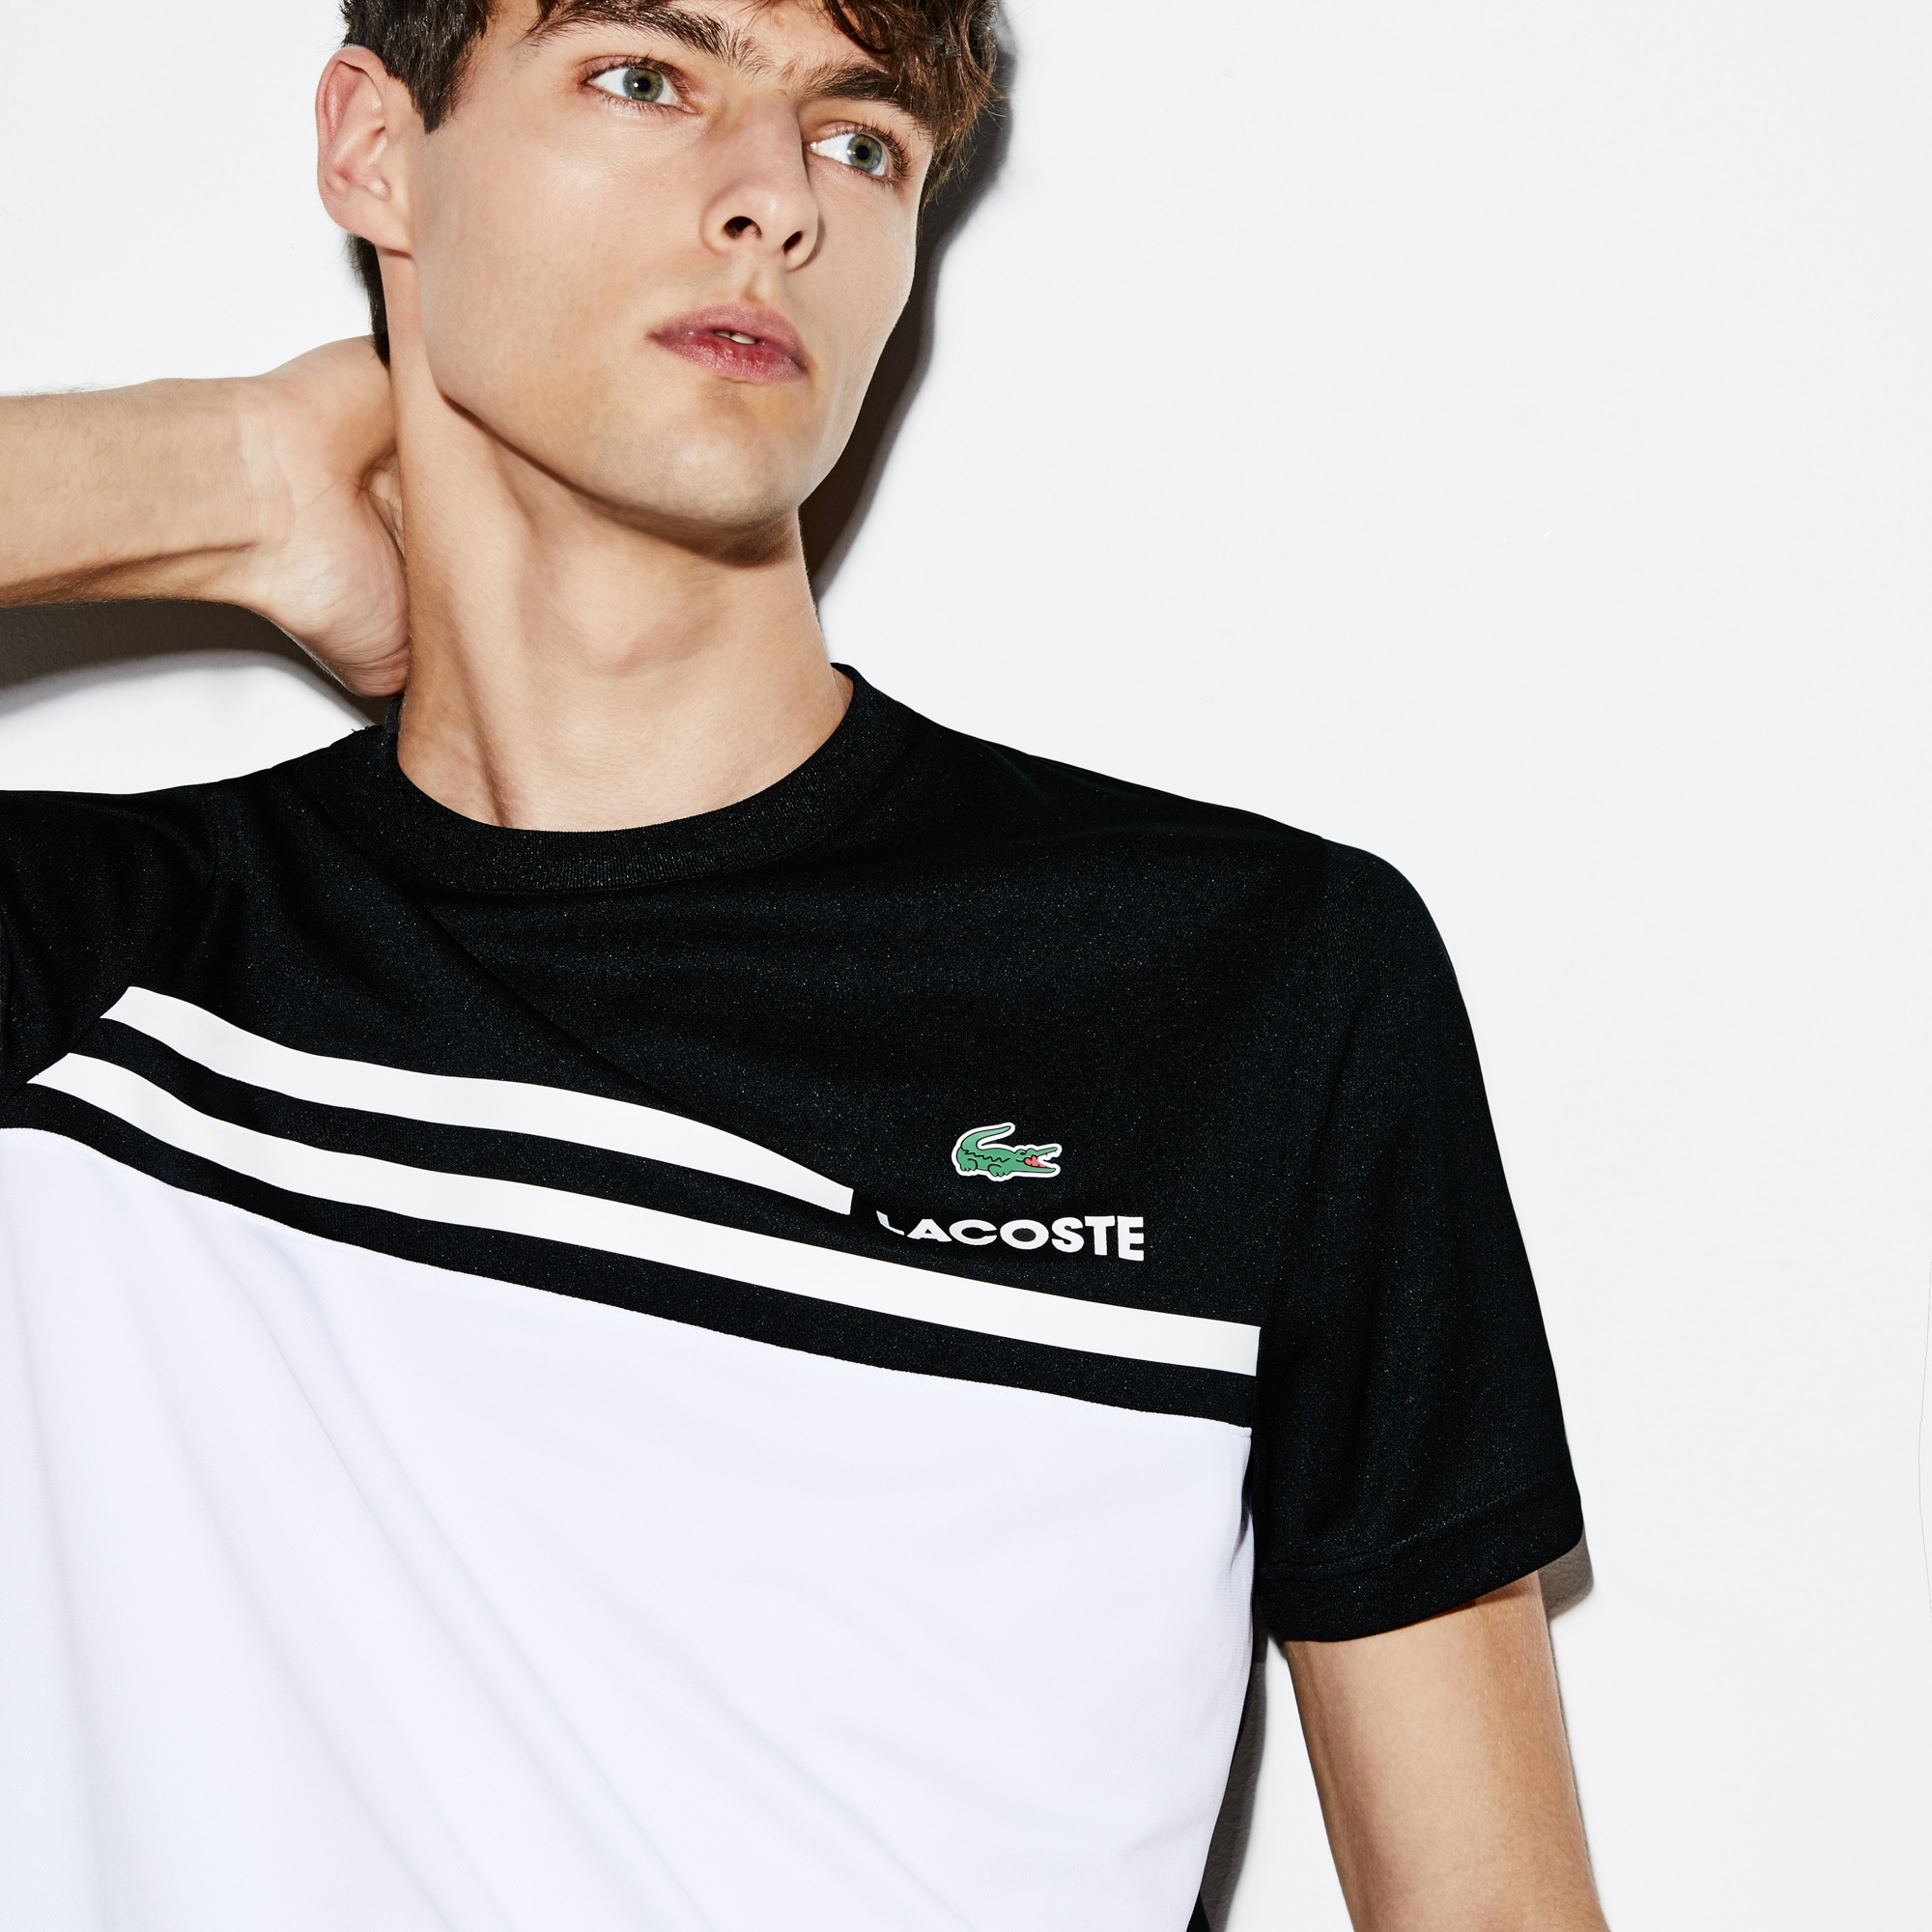 mens t shirts lacoste t shirts lacoste